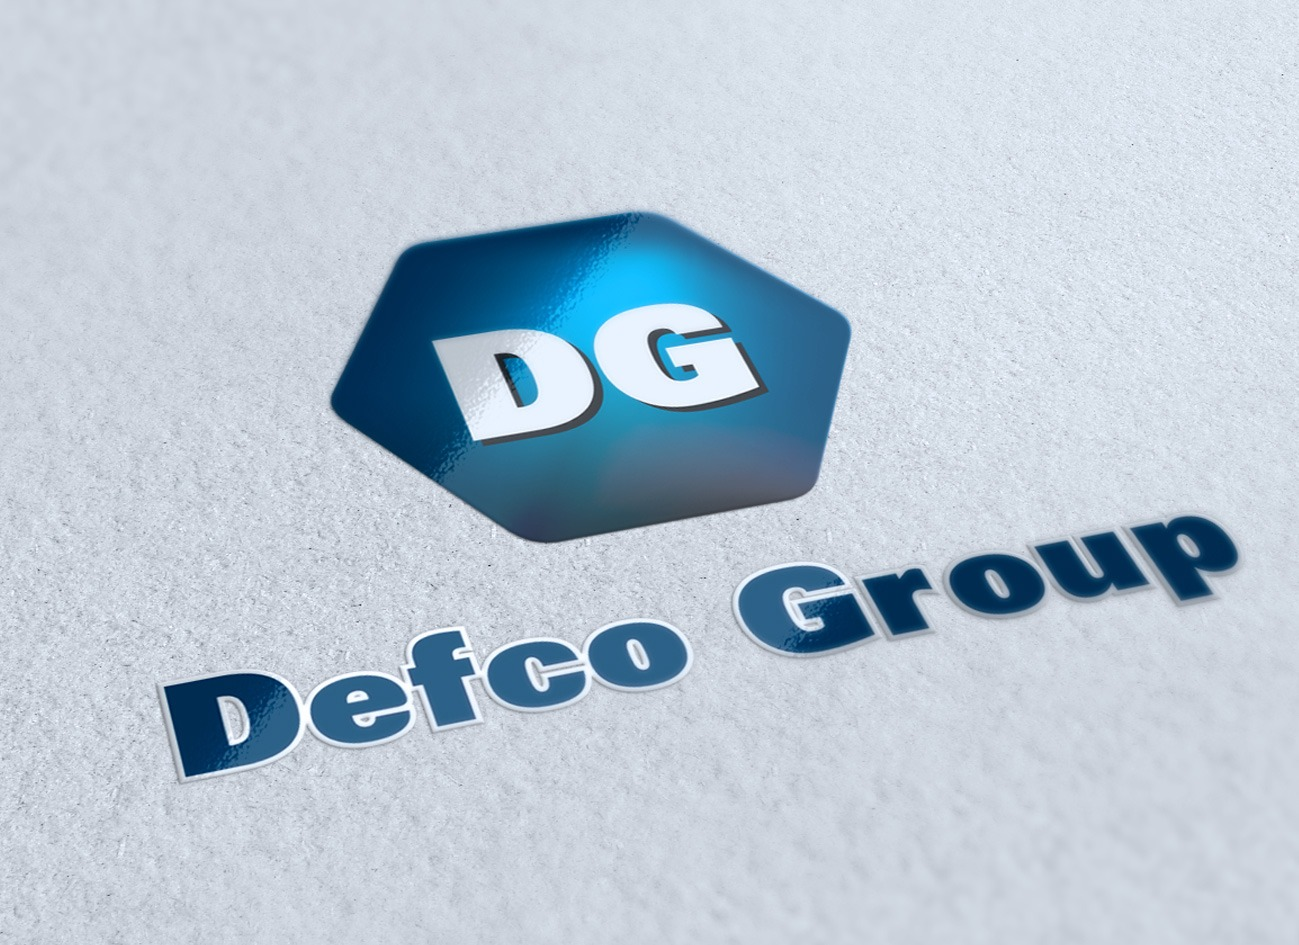 Defco Group logo